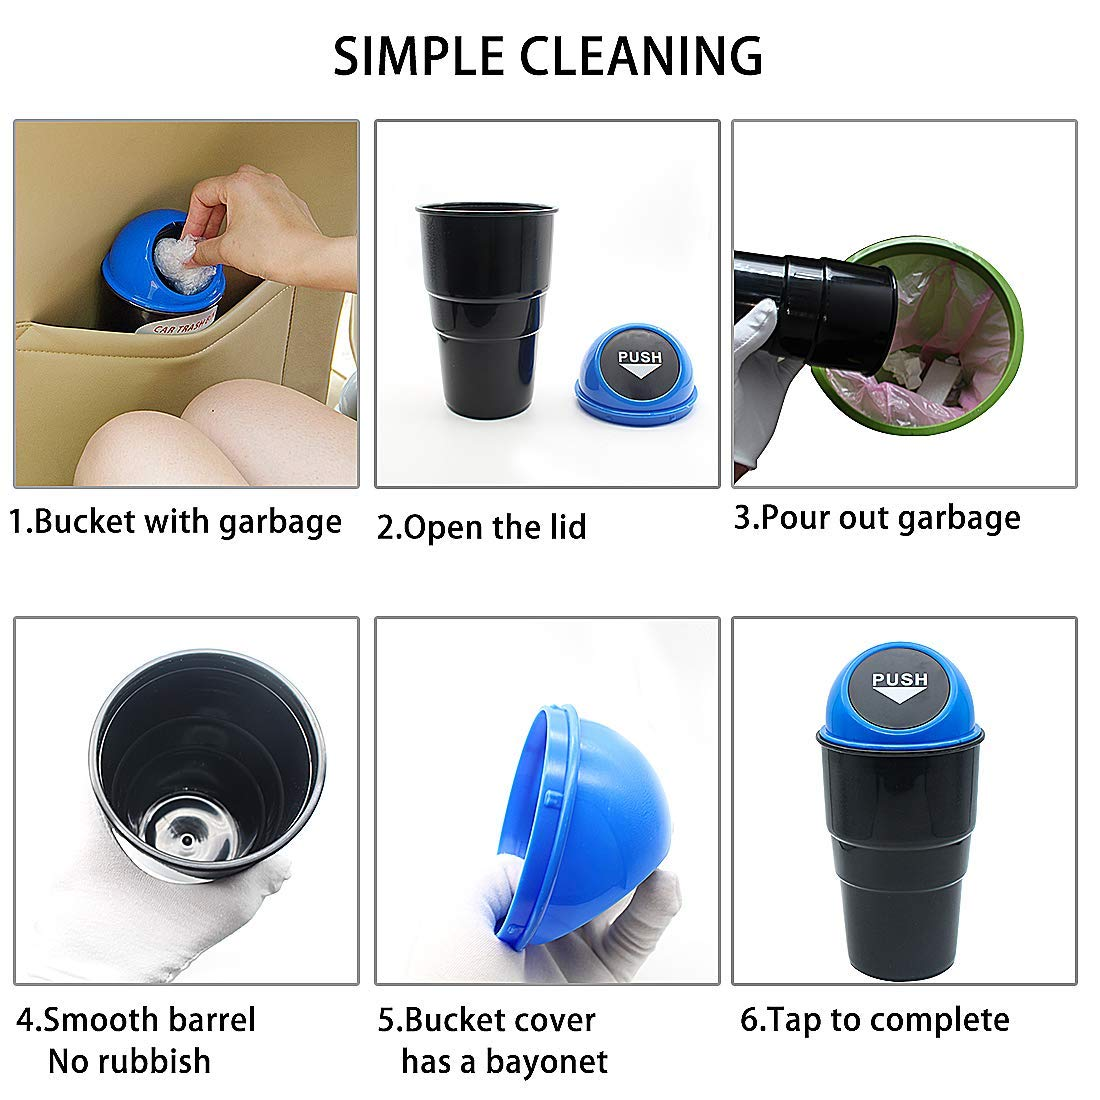 Red Easyinsmile Car Trash Bin Mini Anto Rubbish Bin Can Carbage Automotive Waste Storage Vehicle Trash Bins Dust Case Storage Holder Common Use for Auto Car Office Home